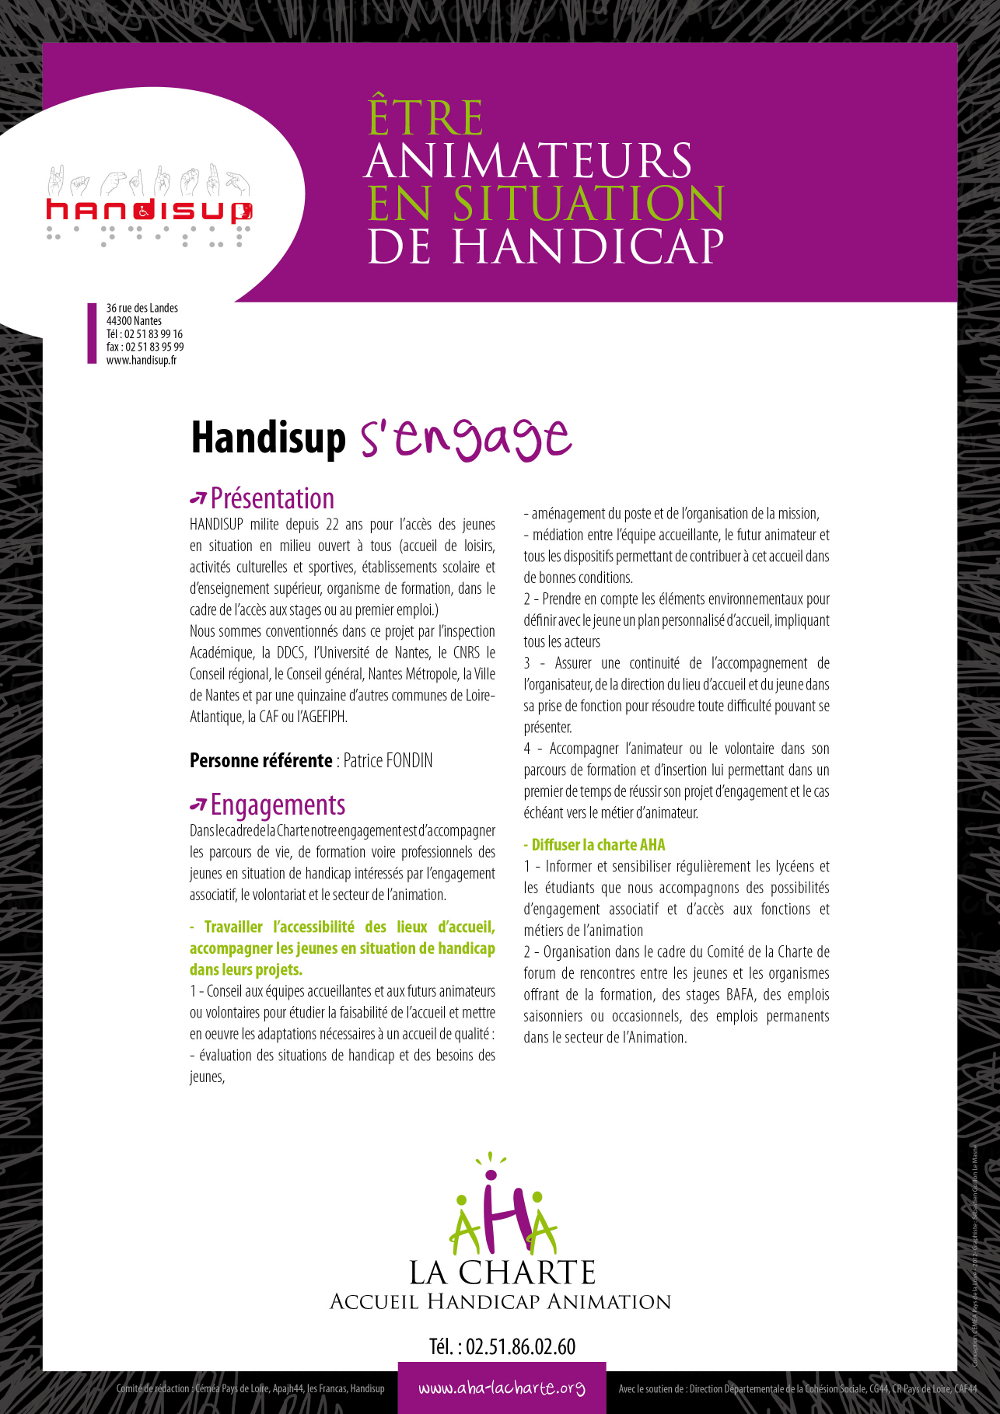 Engagements d'Handisup